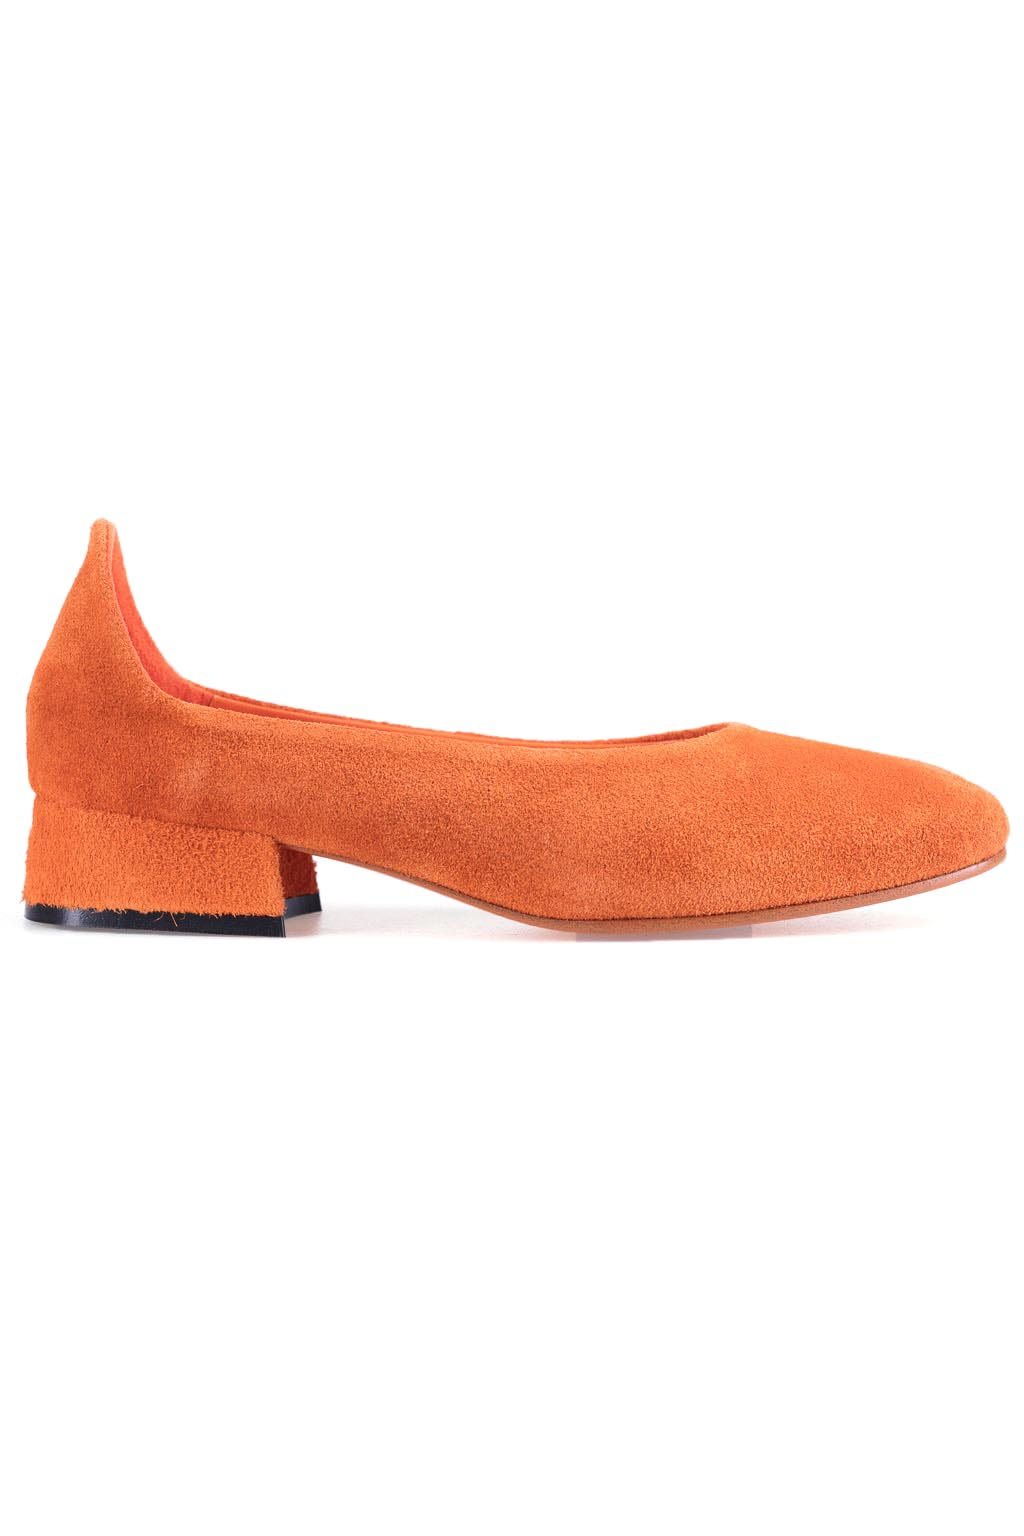 Soft Slip On Shoes - Suede Orange